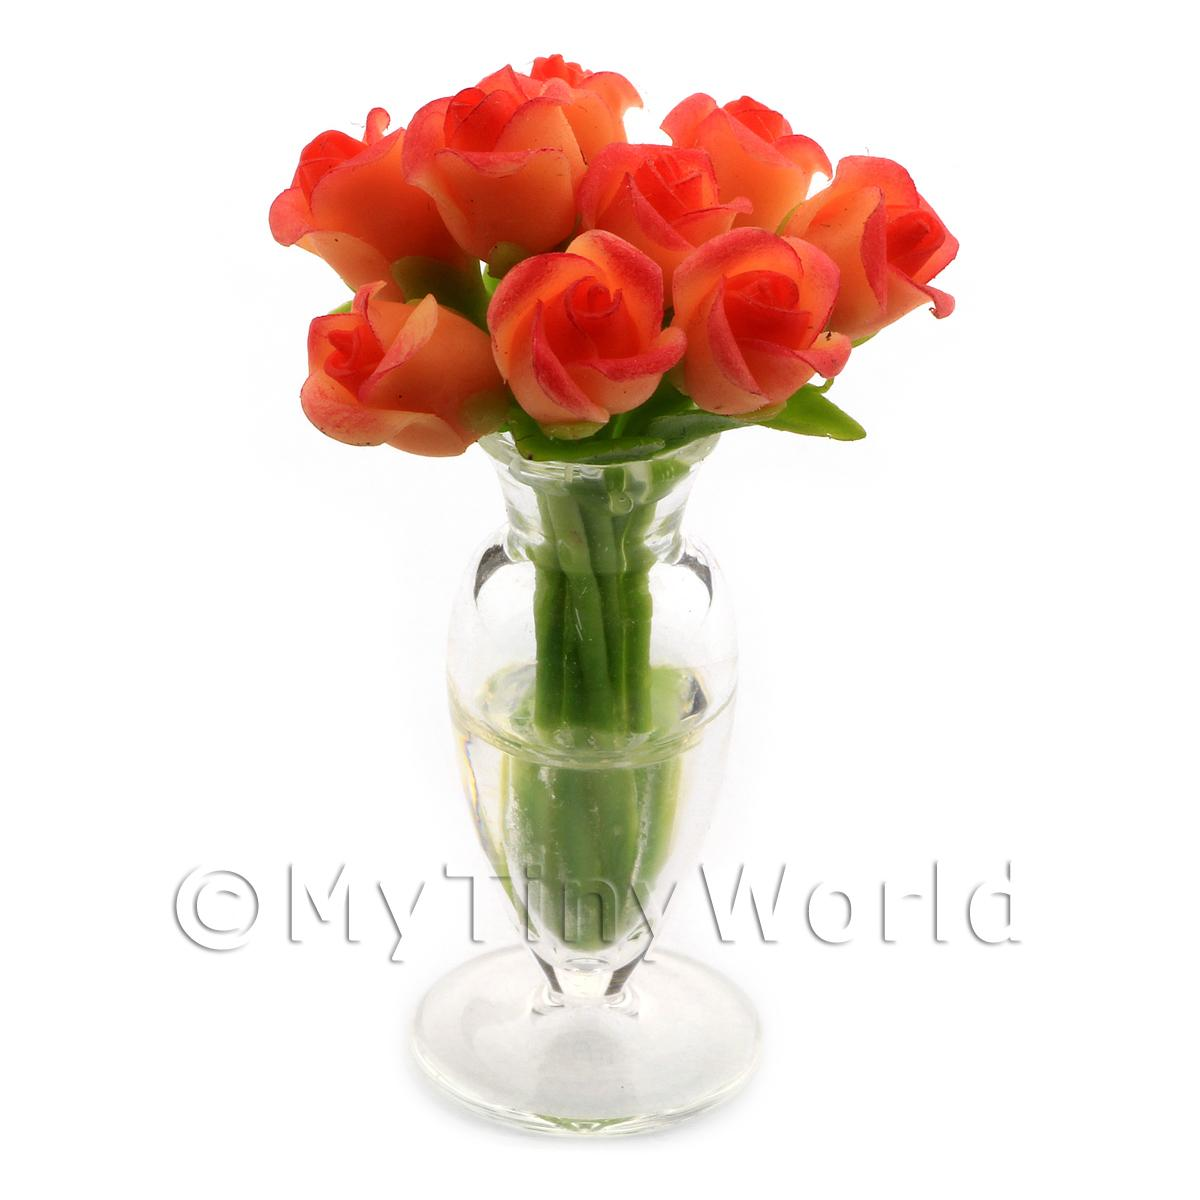 9 Miniature Orange   Red Roses in a Glass Vase